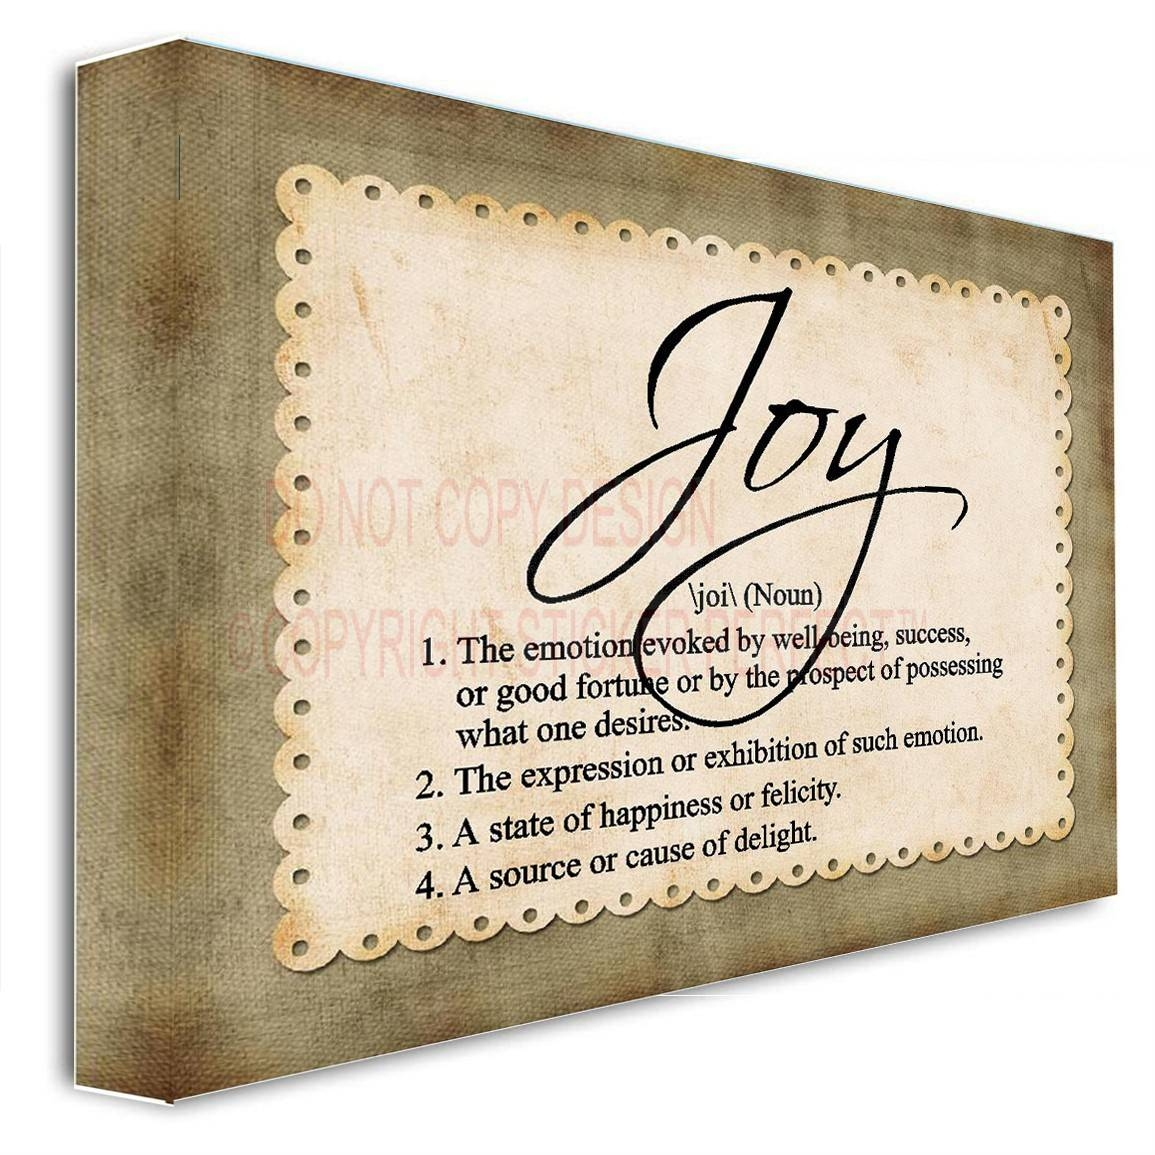 Framed Canvas Print Joy (noun) Definition Inspirational Wall Art Intended For 2018 Inspirational Wall Plaques (View 7 of 20)